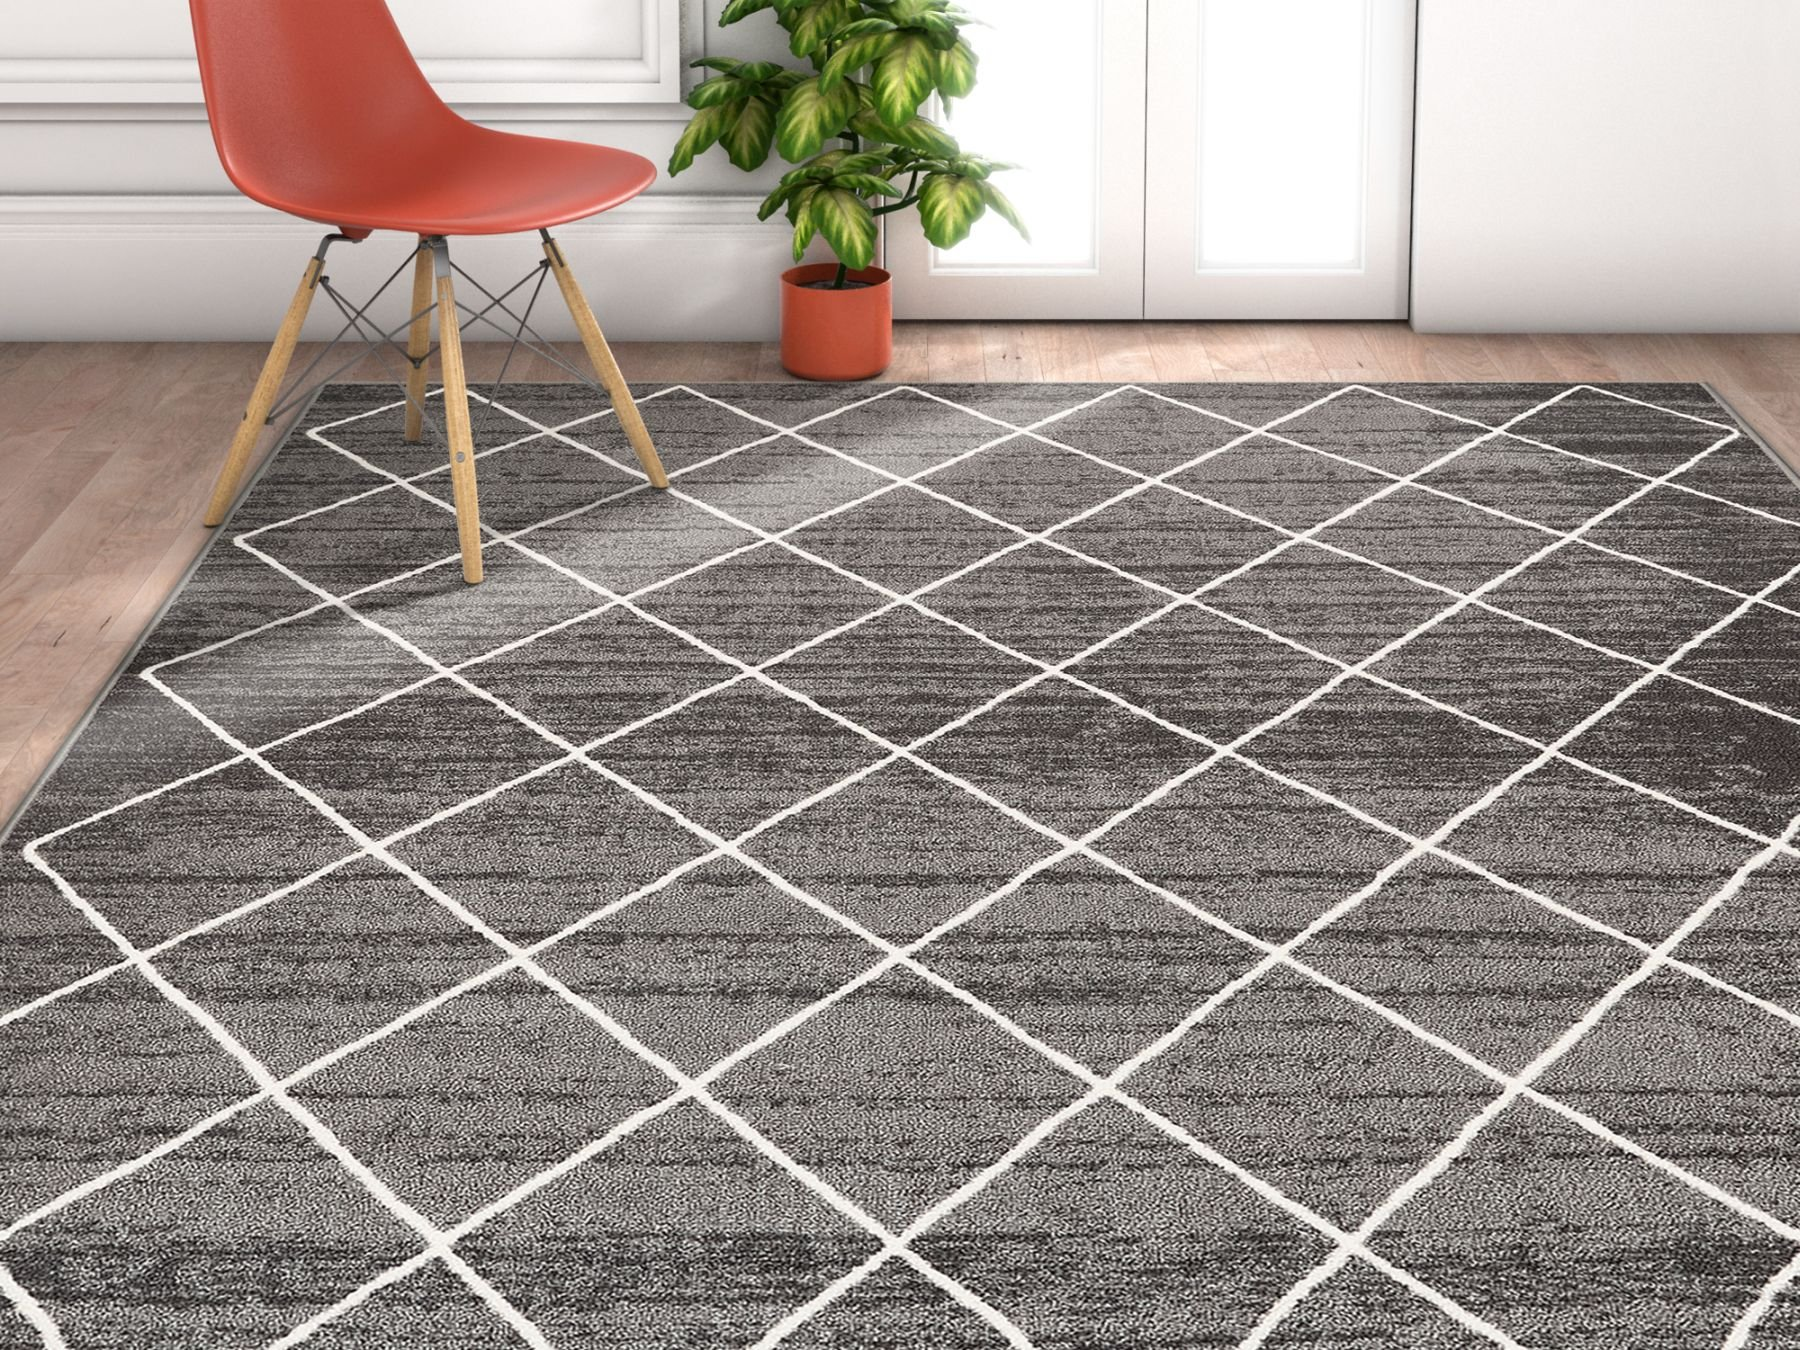 Non-Skid / Slip Rubber Back Antibacterial 8x11 (7'10''x9'10'') Diamond Lattice Print Grey Thin Low Pile Machine Washable Indoor Outdoor Area Rug by Well Woven